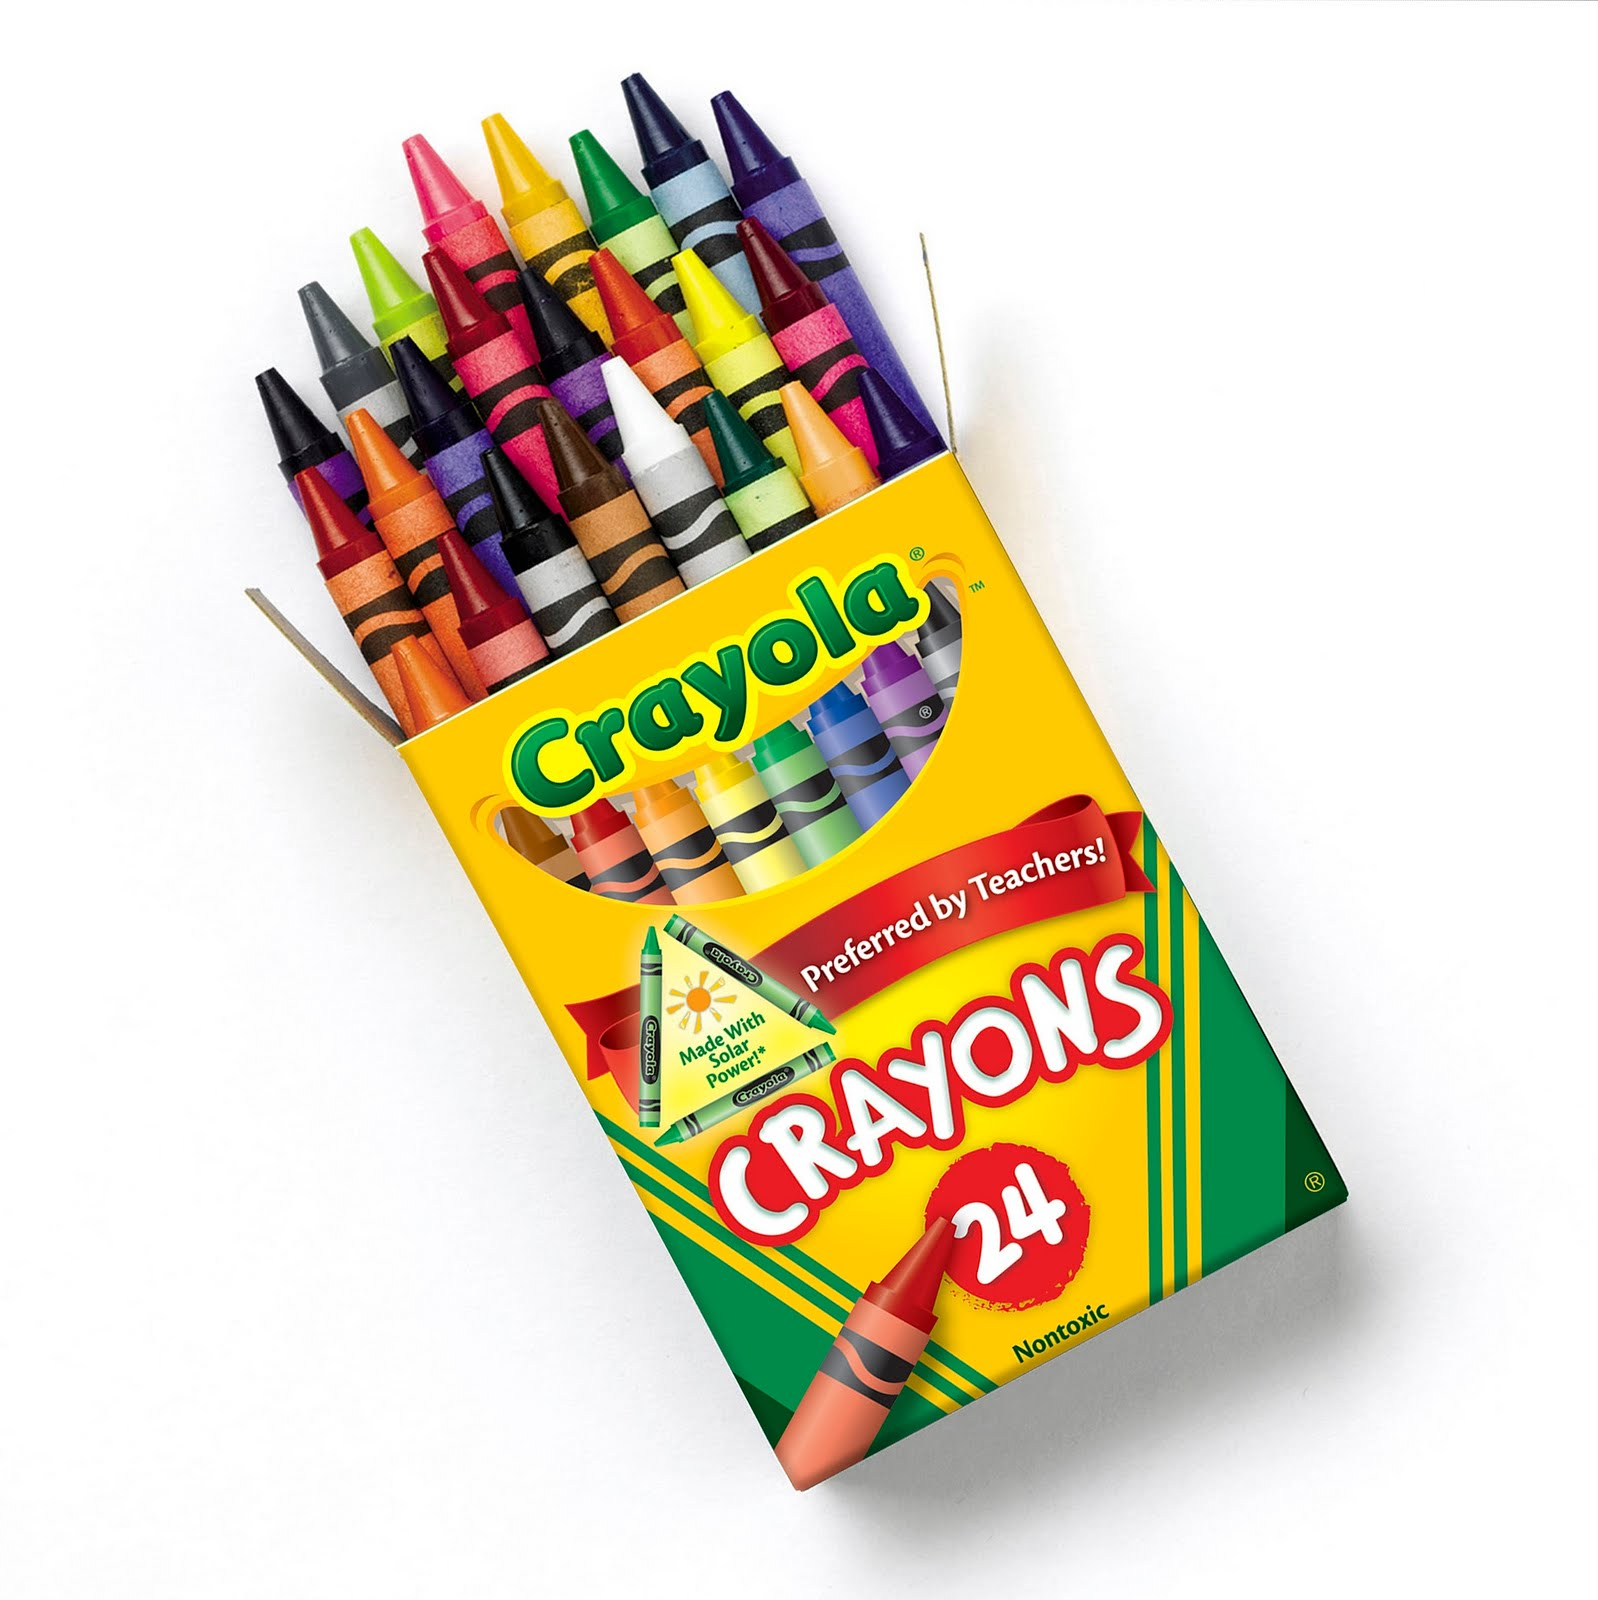 Crayola Markers Clipart | Clipart Panda - Free Clipart ImagesCrayola Markers Images Clipart